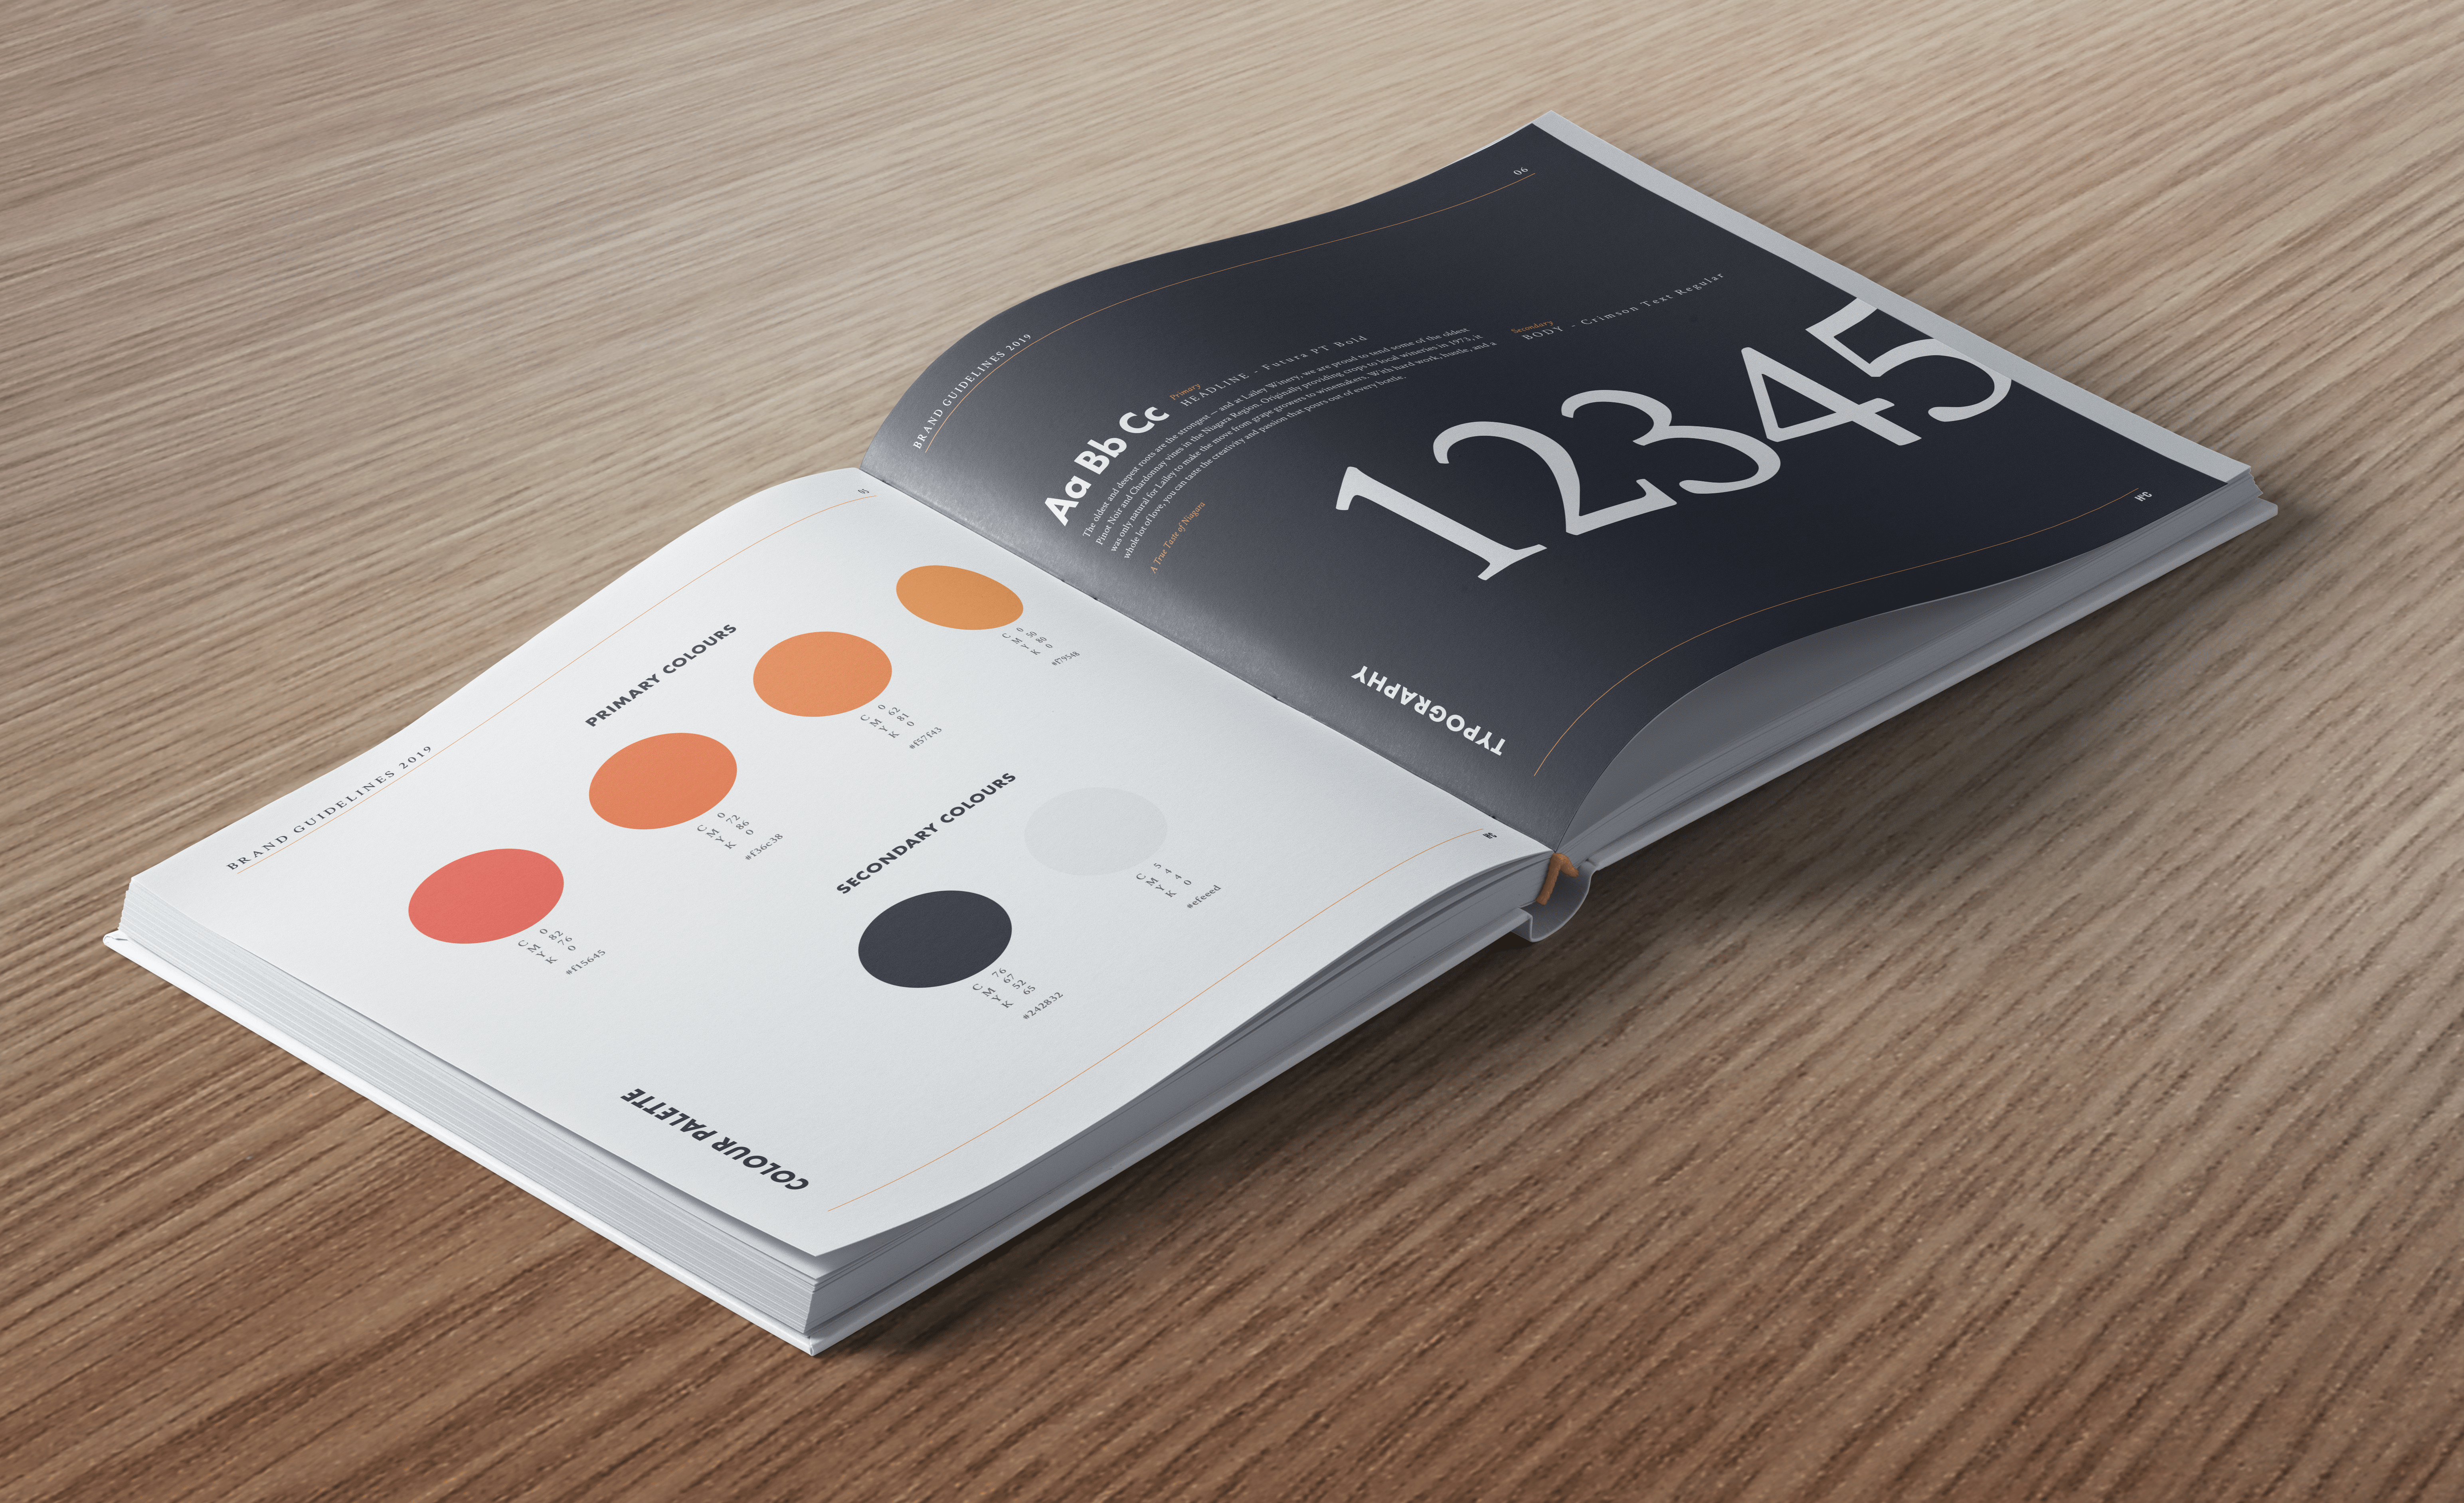 Lailey_Brand Guidelines-min